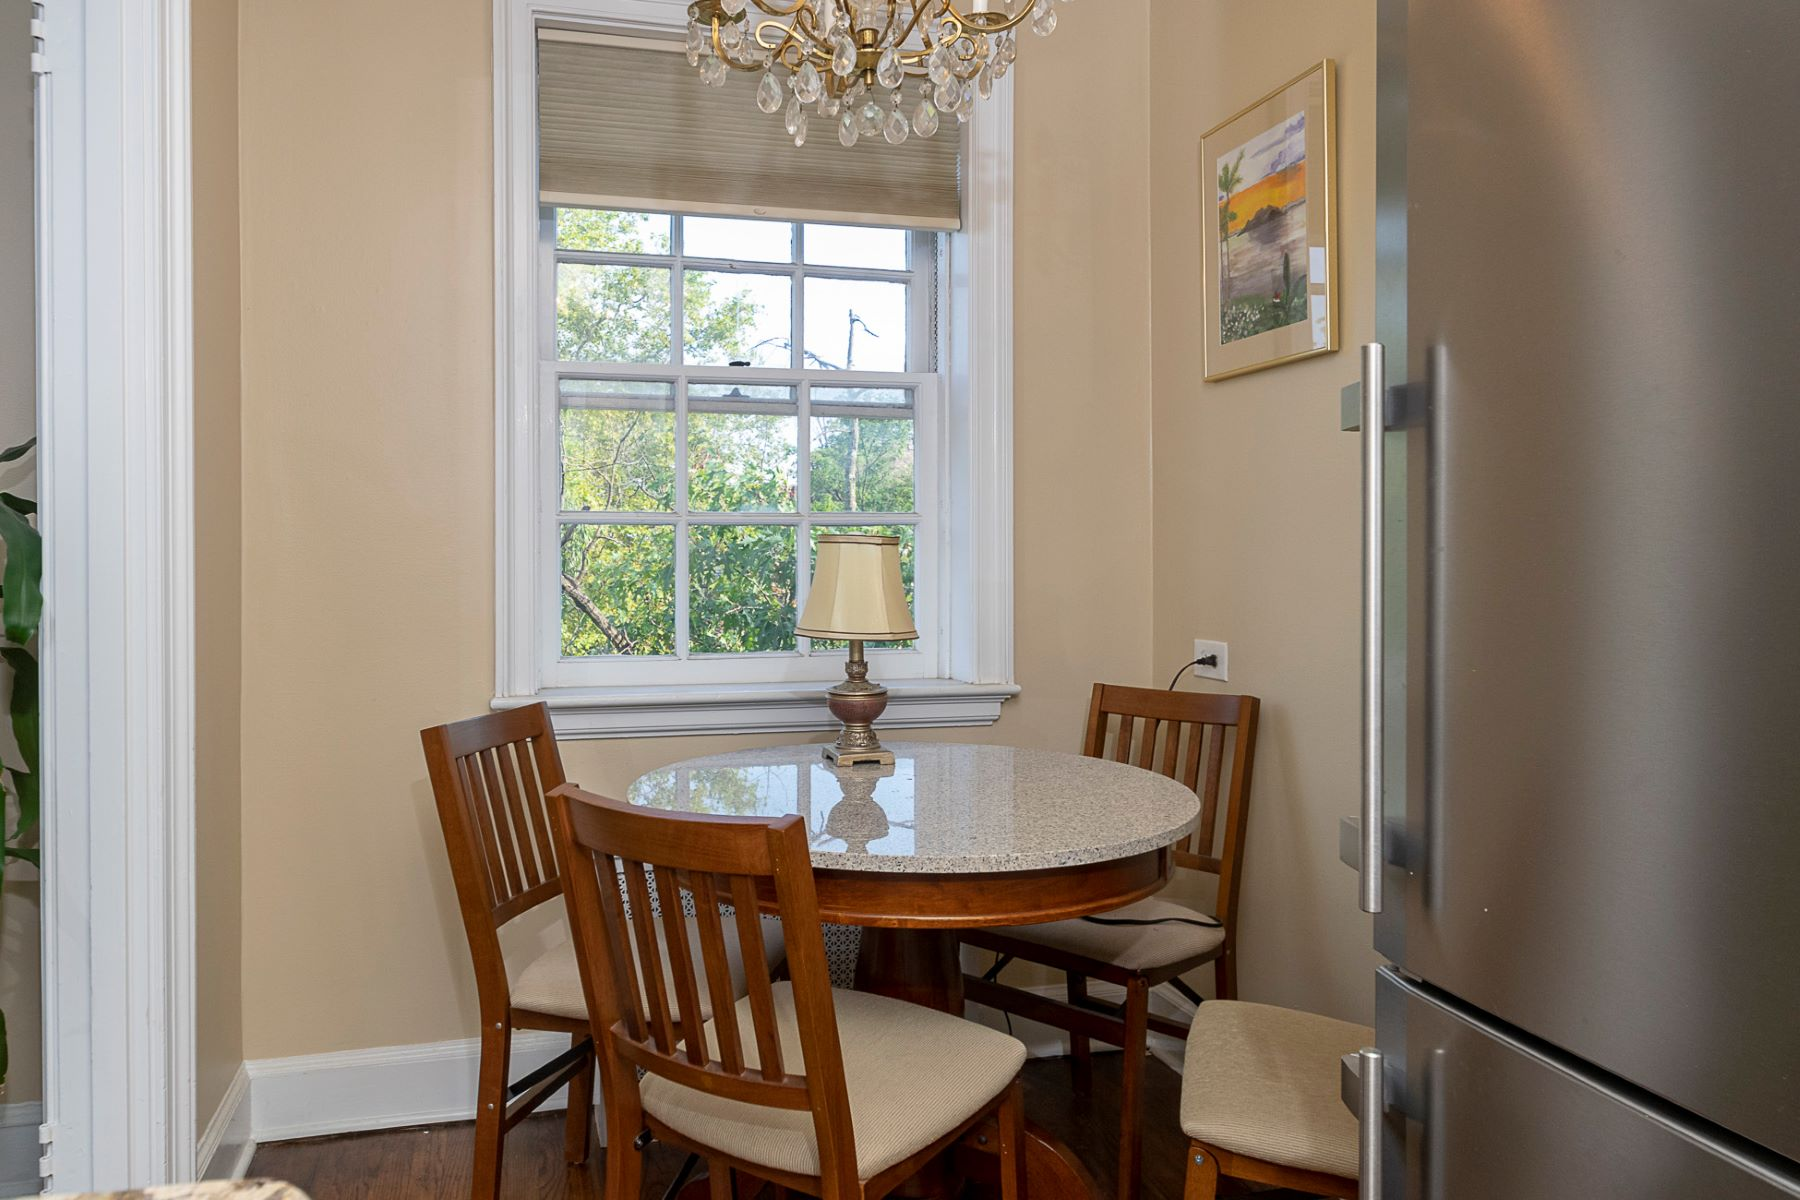 Additional photo for property listing at Penthouse - One Bedroom Rental 3 Palmer Square, 3H, Princeton, New Jersey 08542 United States